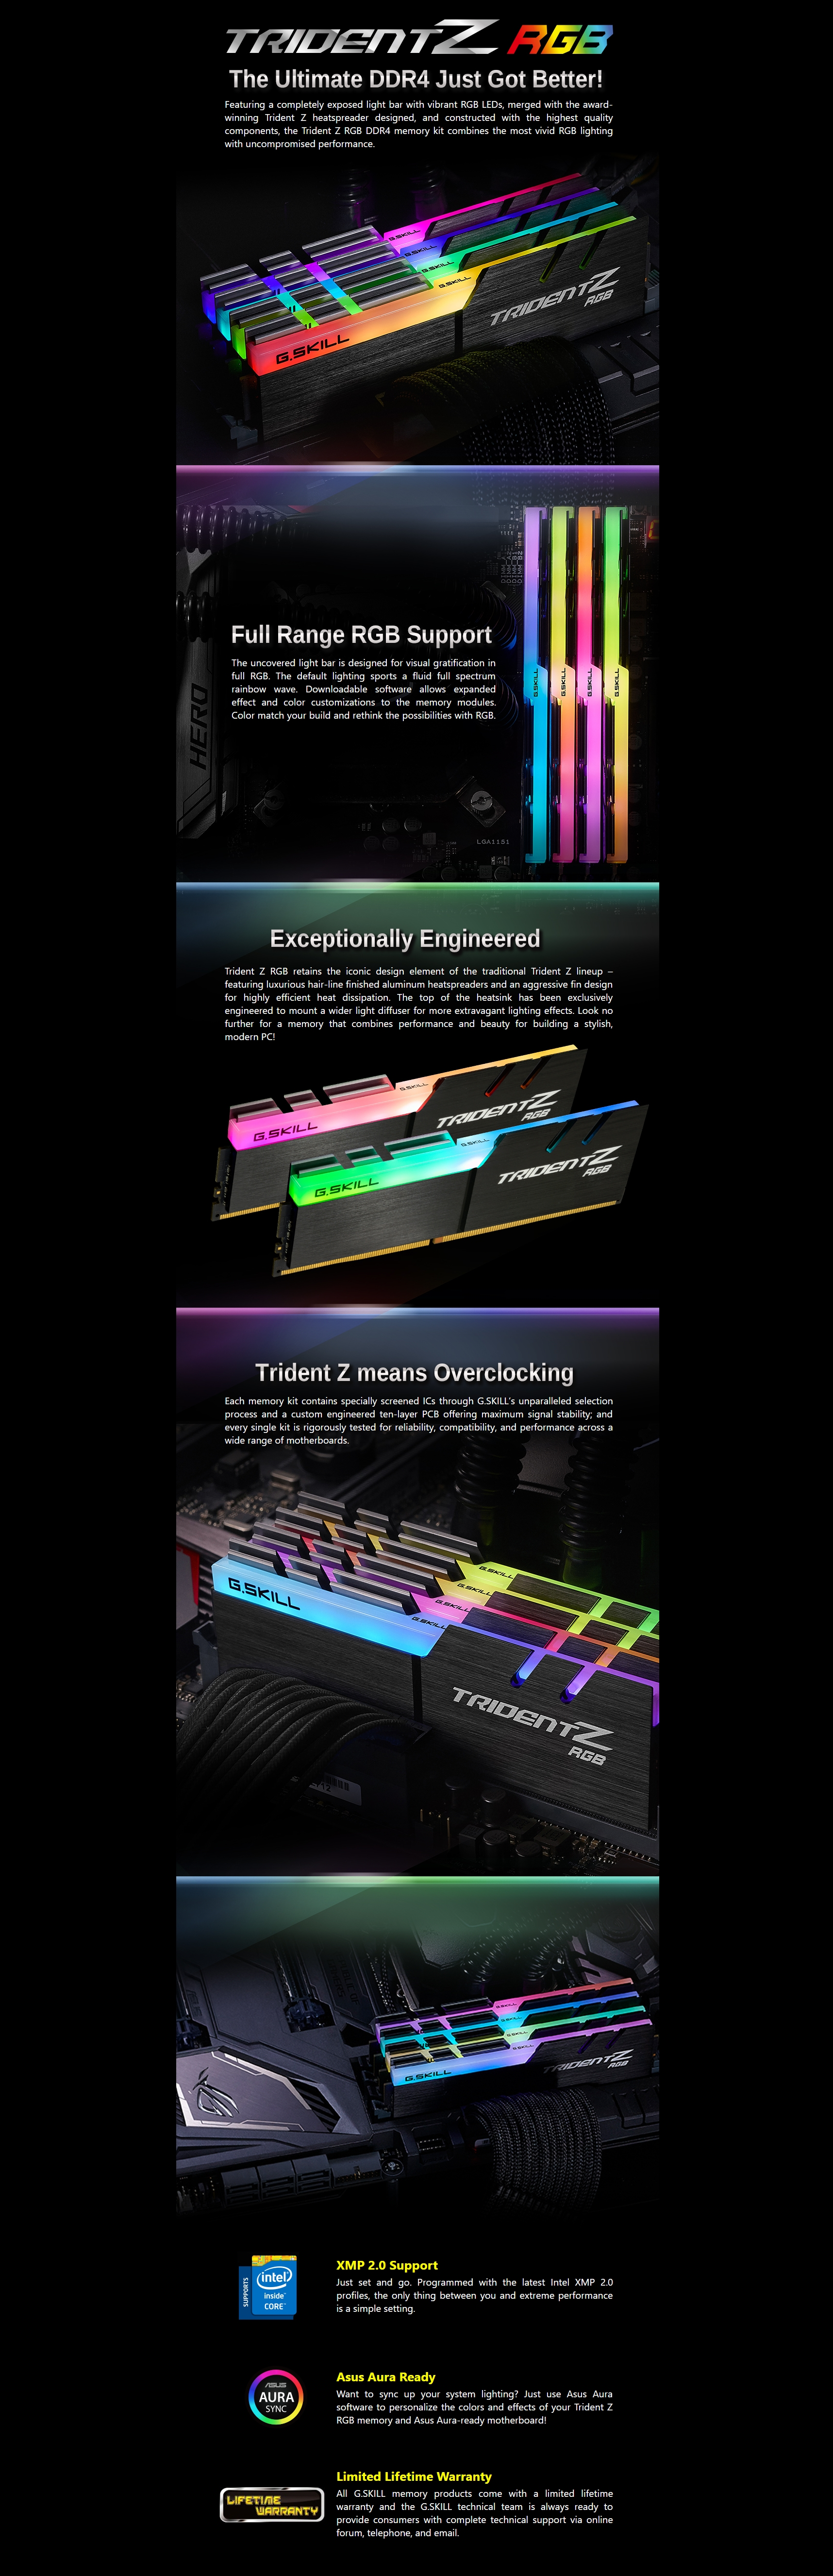 A large marketing image providing additional information about the product G.Skill 32GB Kit (4x8GB) DDR4 Trident Z RGB 3200MHz C16 - Additional alt info not provided